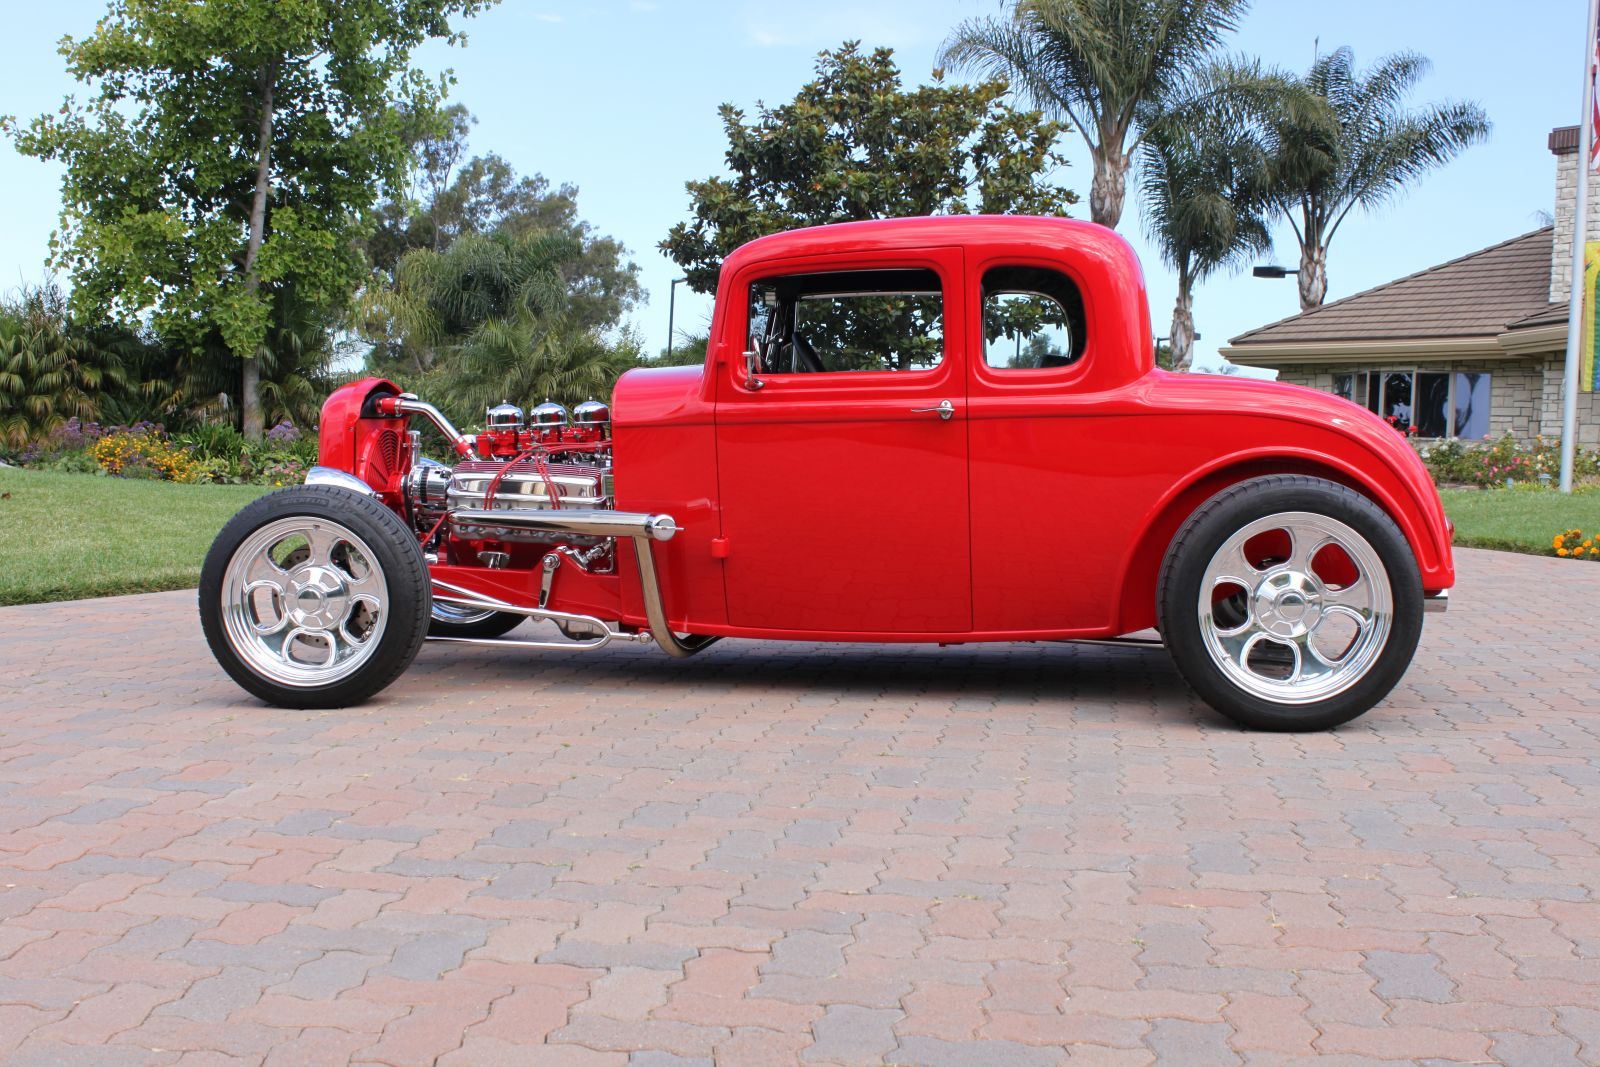 Bill Hood Chevy >> The Hot Rod History of Bill Neumann | Hotrod Hotline